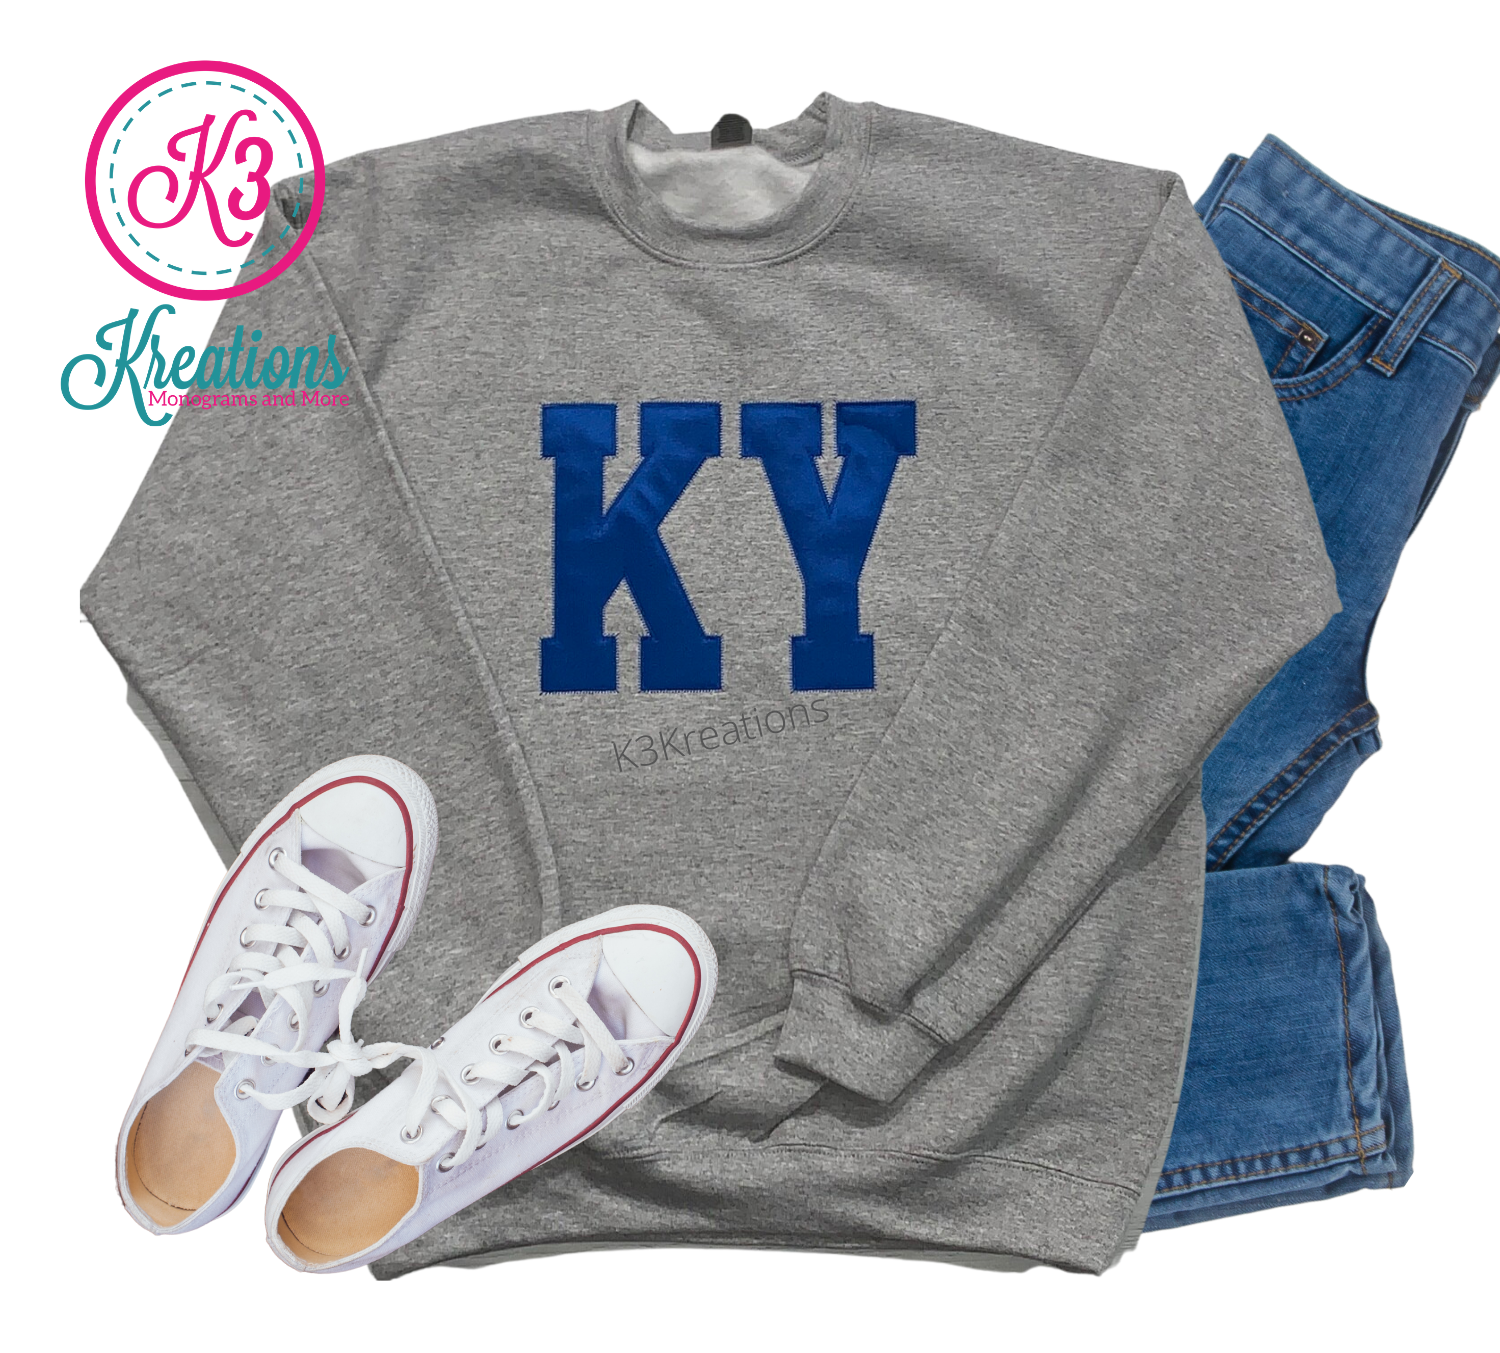 Adult KY Applique Crewneck Sweatshirt (Choose shirt color and fabric)